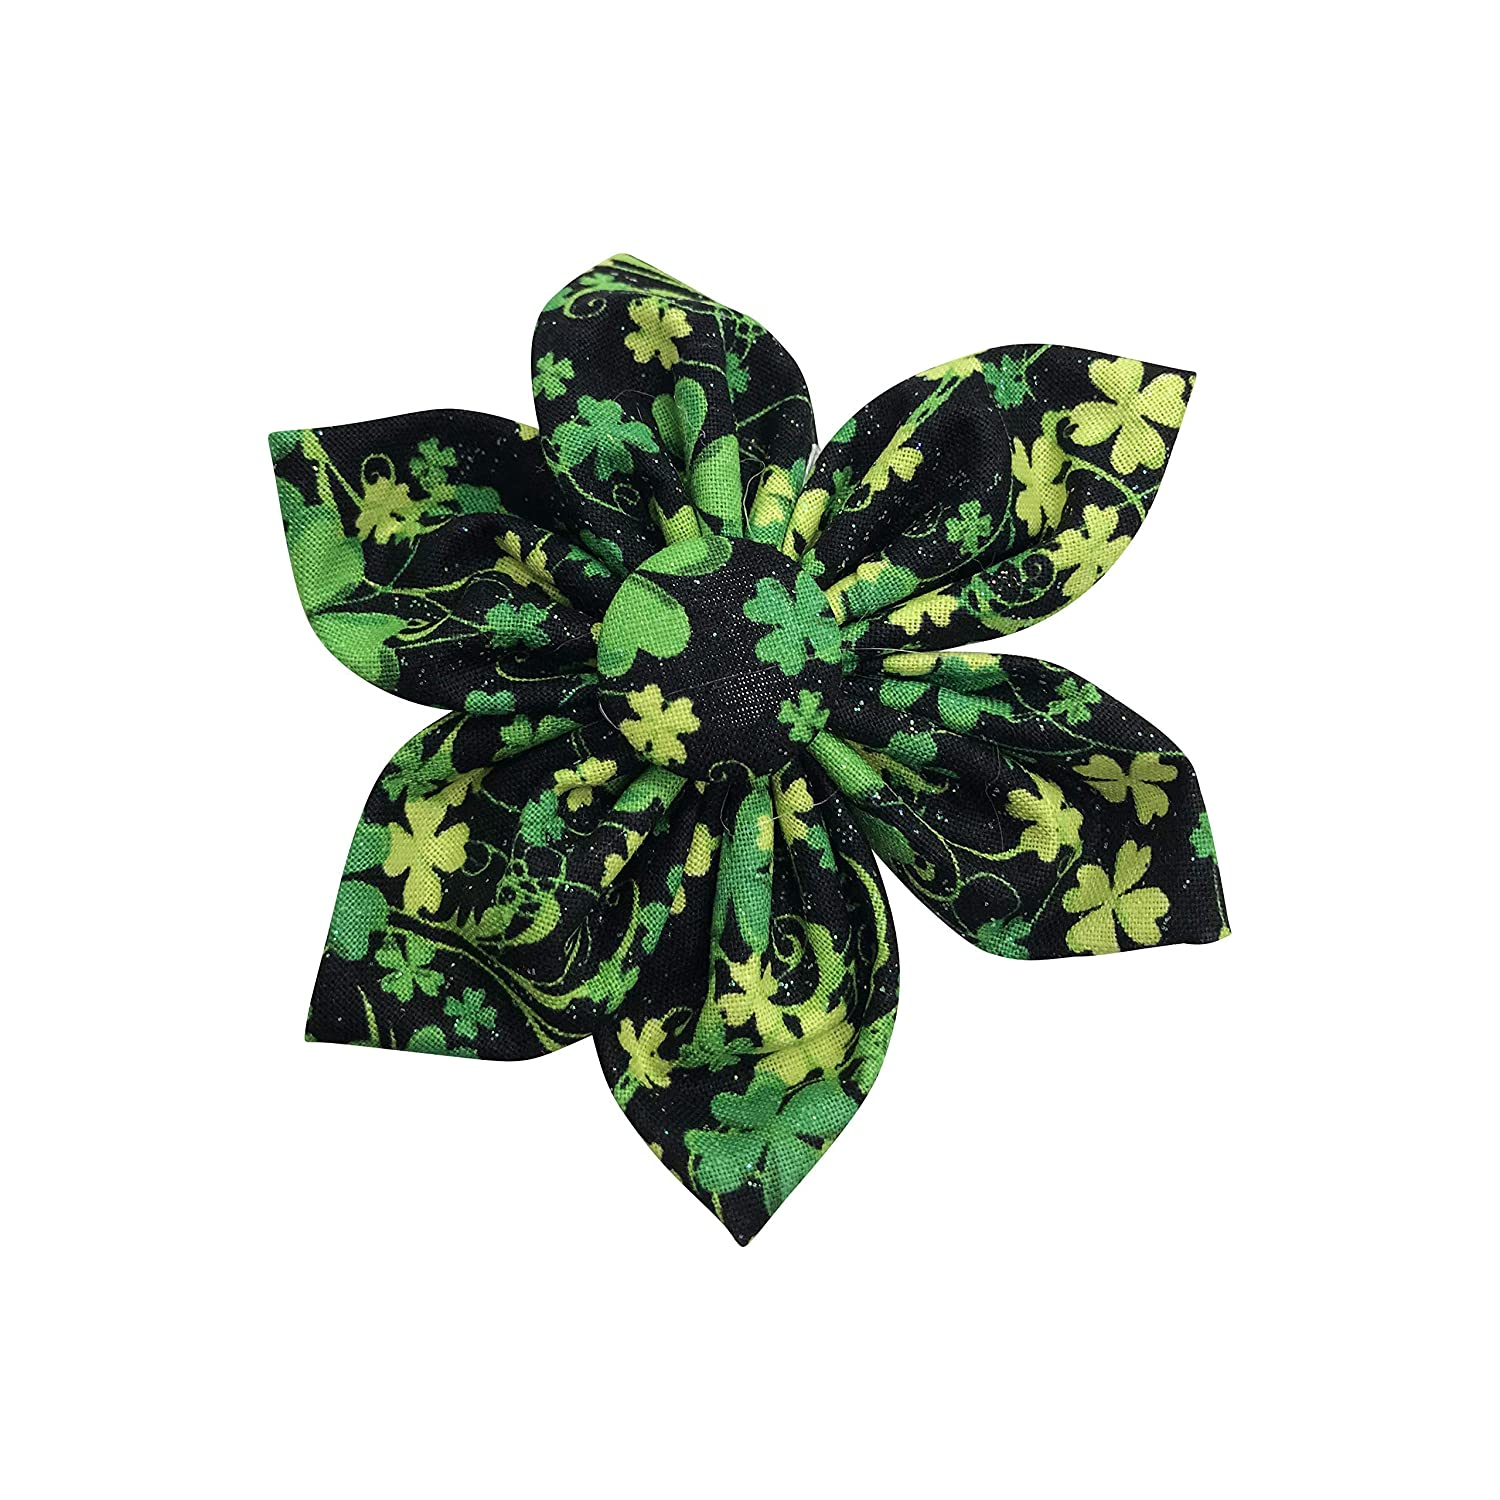 Handmade Flower Girls Super beauty Limited time for free shipping product restock quality top Hair Bow with Clip Alligator